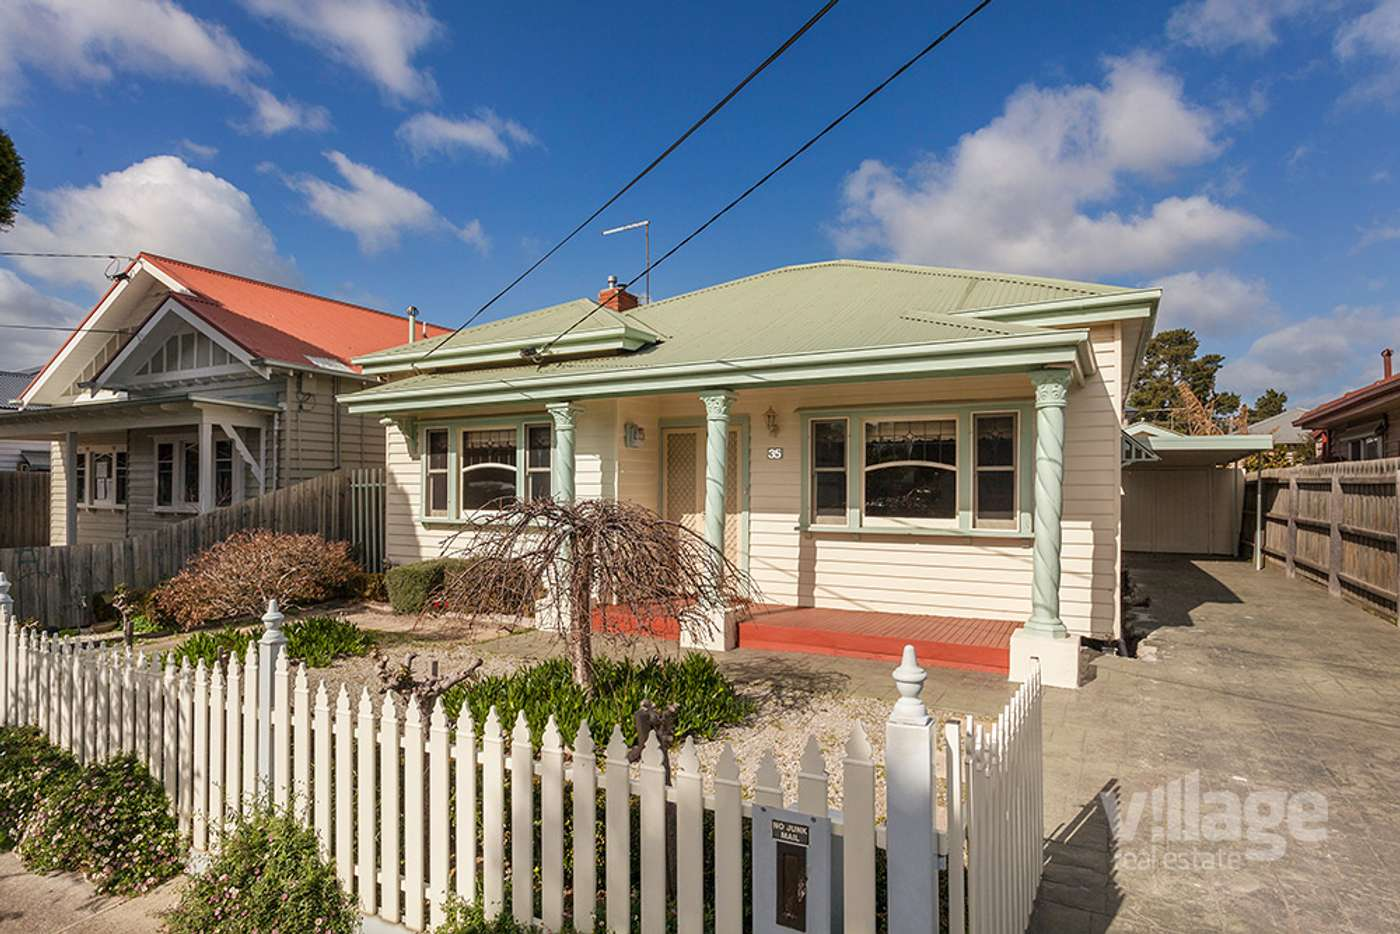 Main view of Homely house listing, 35 Pitt Street, West Footscray VIC 3012